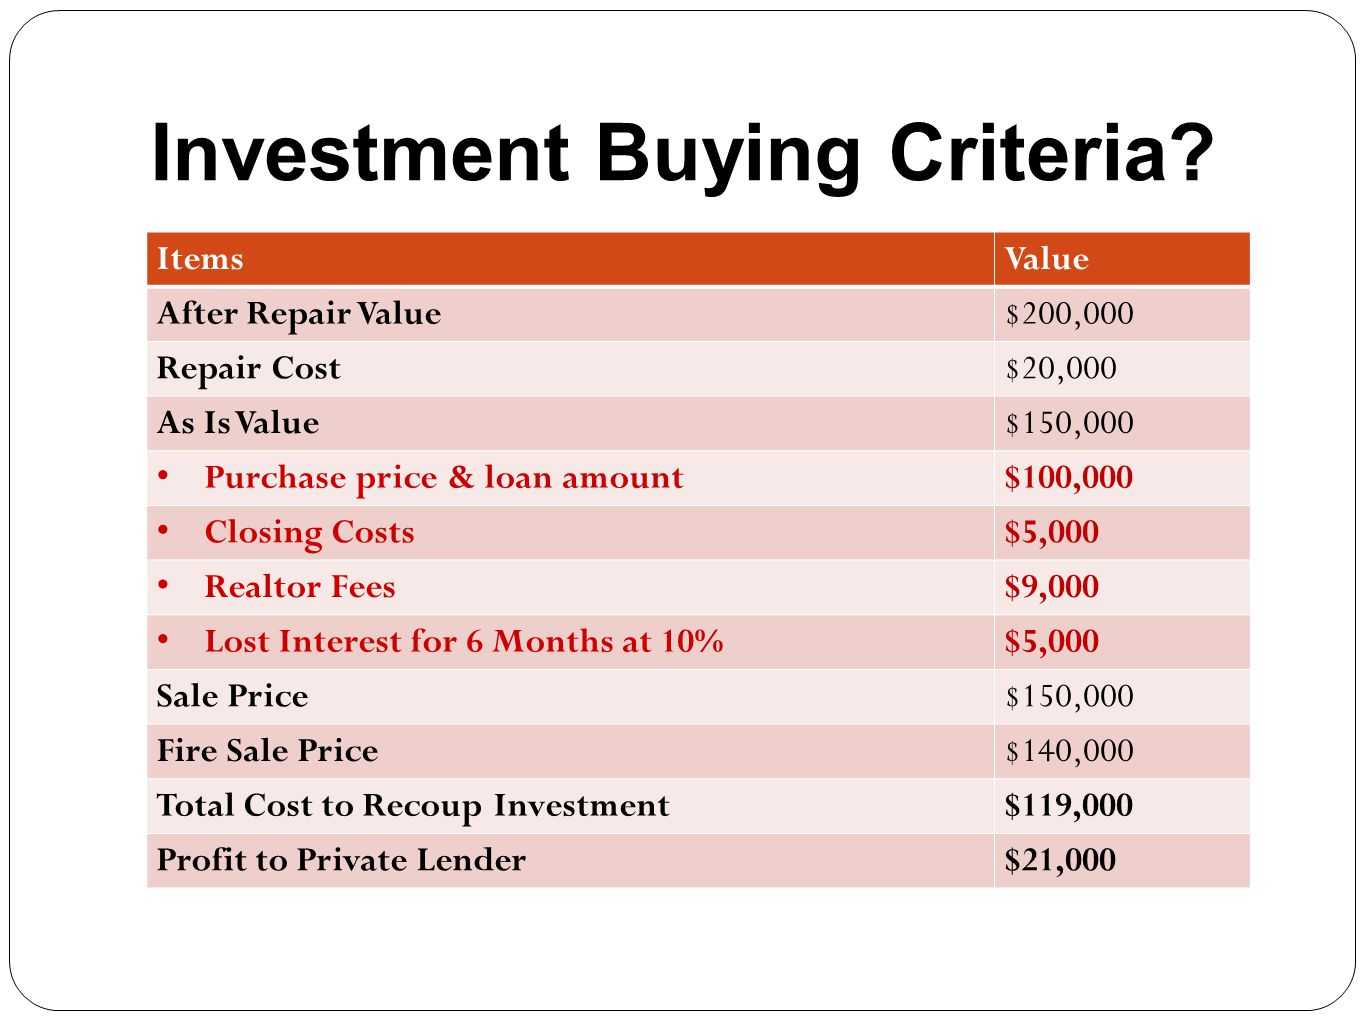 Investment Buying Criteria? ItemsValue After Repair Value$200,000 Repair Cost$20,000 As Is Value$150,000 Purchase price & loan amount$100,000 Closing